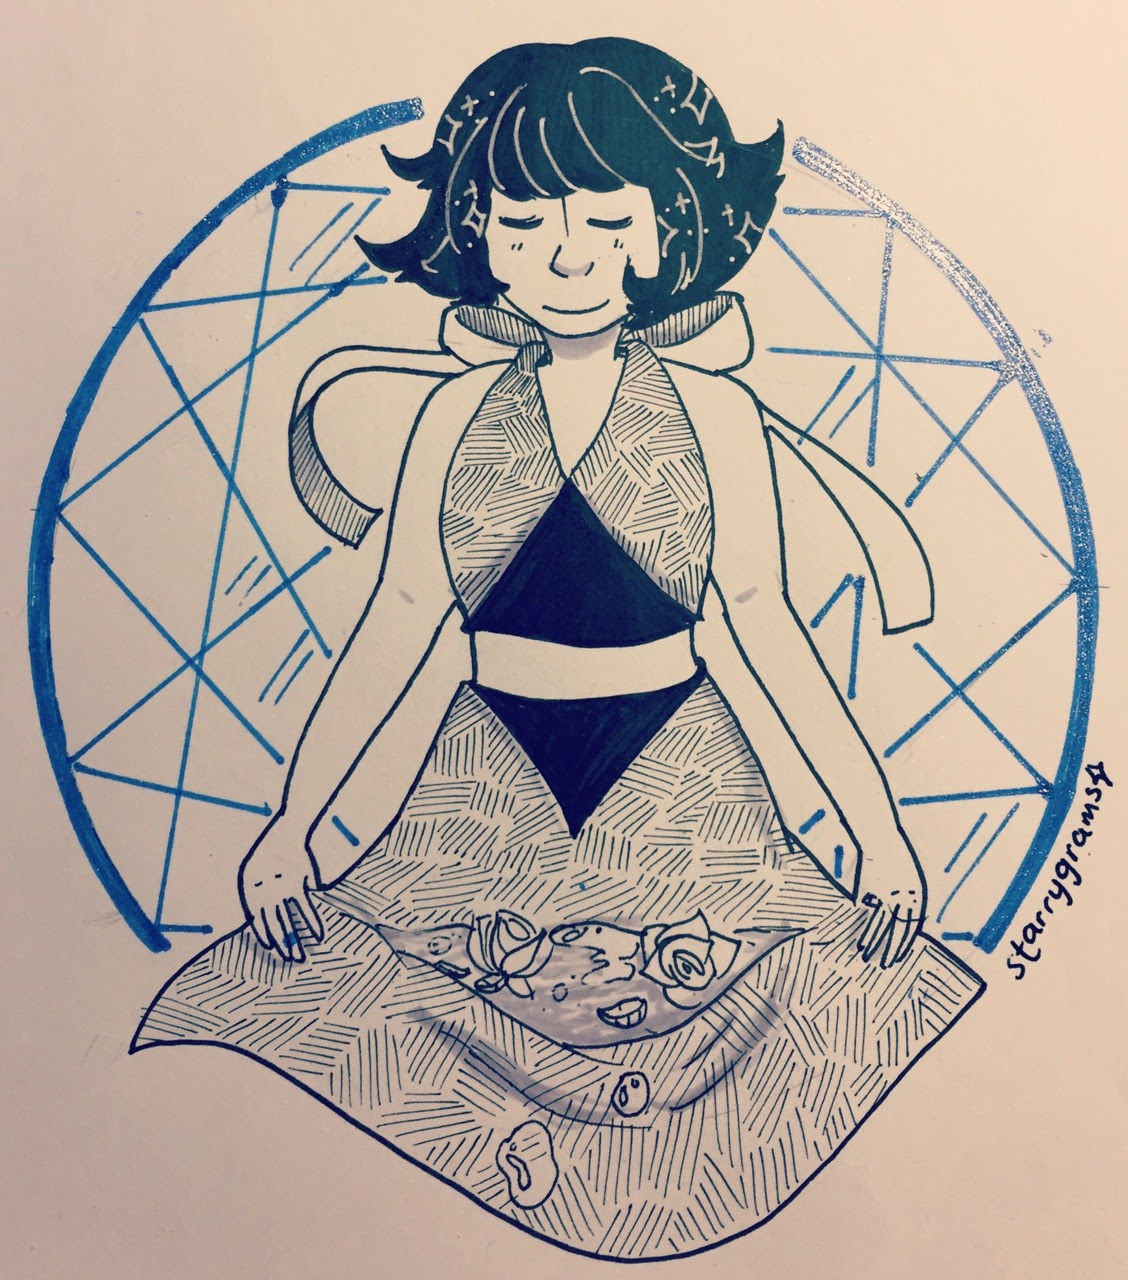 Day 12: the mirror gem